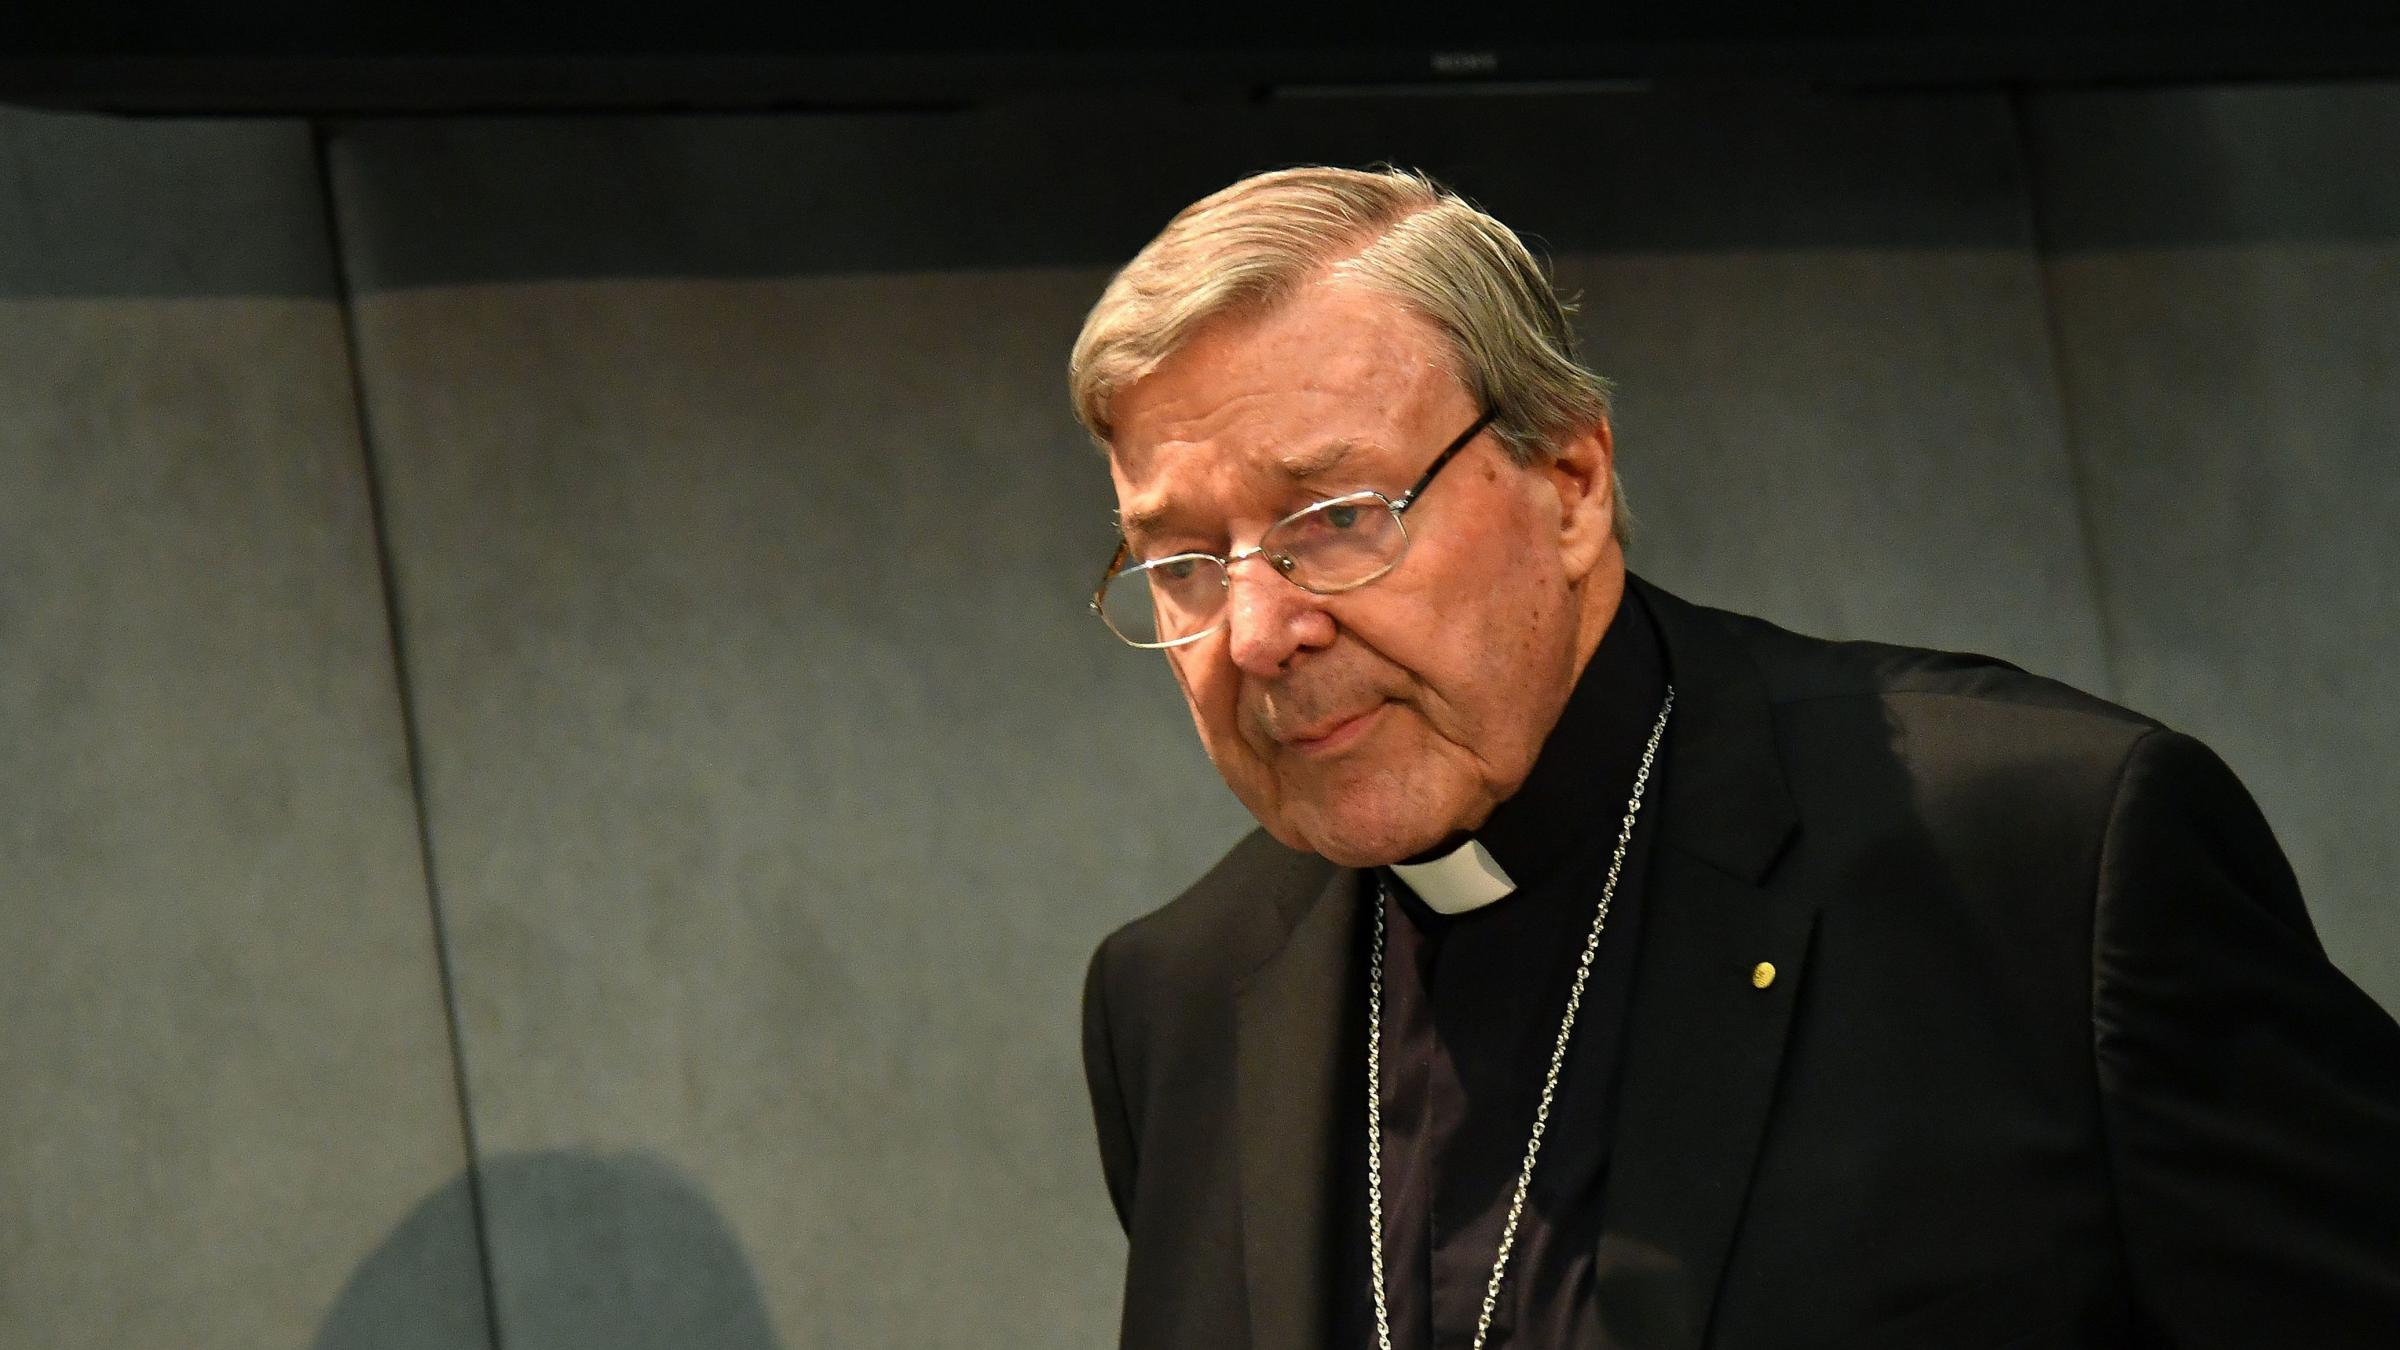 Australian Cardinal George Pell looks on as he makes a statement at the Holy See Press Office in Vatican City on June 29 after being charged with historical sex offenses. Pell has since returned to Australia to face the charges which he denies